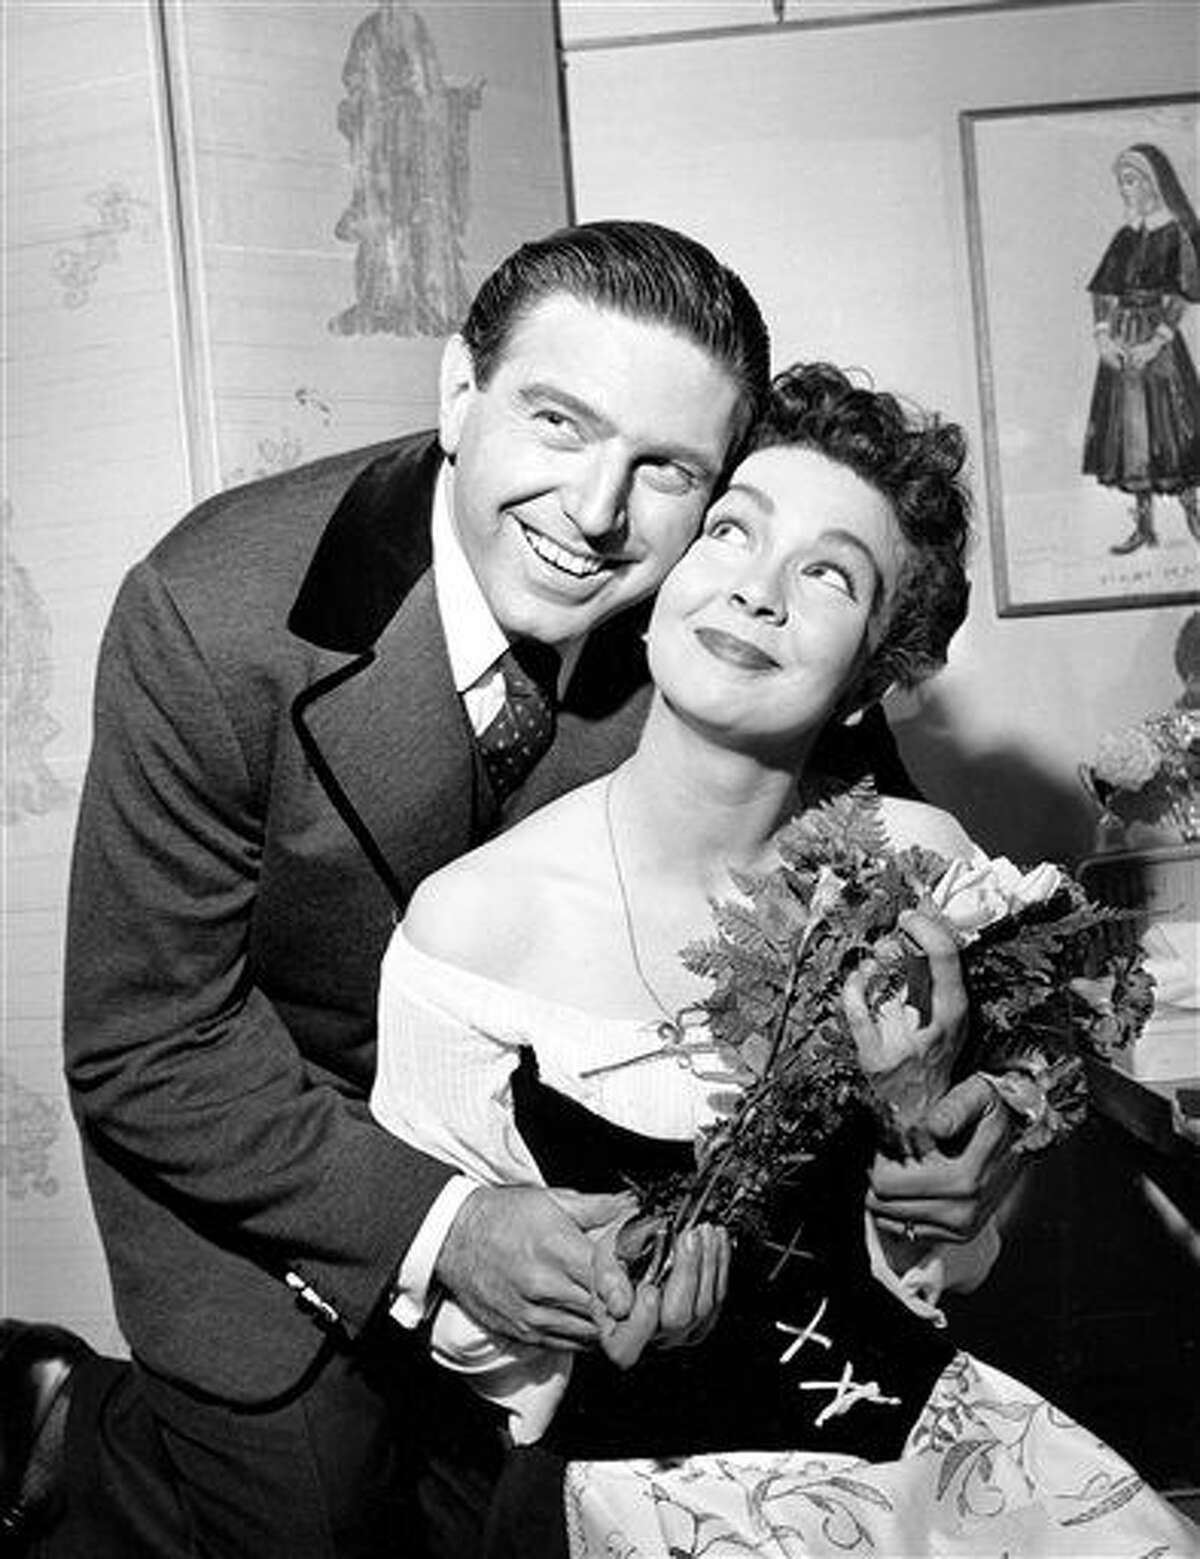 CORRECTS DATE OF DEATH TO TUESDAY, JULY 21 - FILE - In this May 12, 1960 file photo, Renee Guerin, of Juneau, Alaska, poses with her costar Theodore Bikel after their performance of